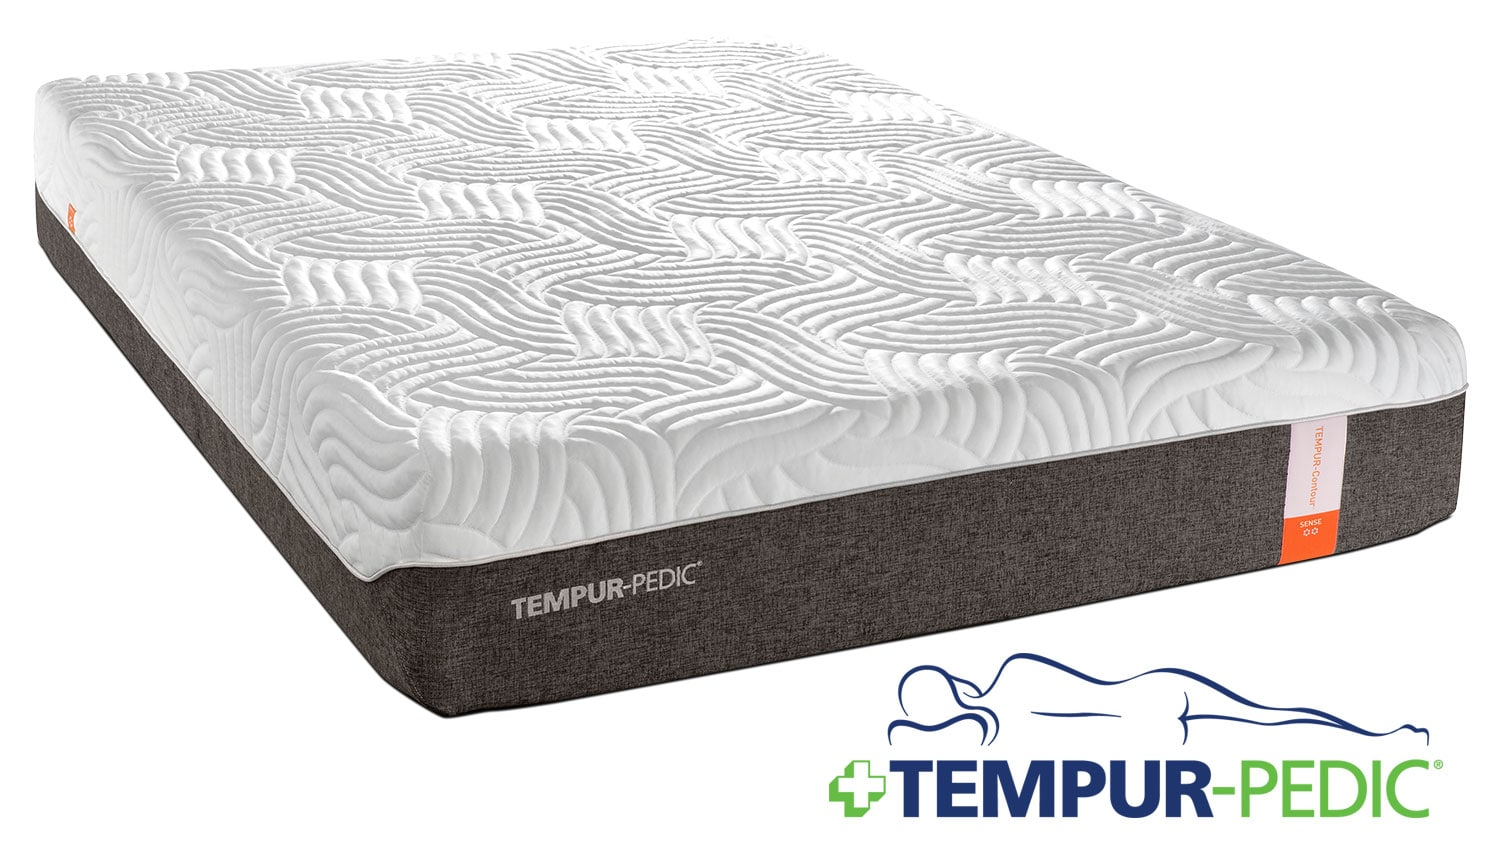 Tempur-Pedic Sense King Mattress